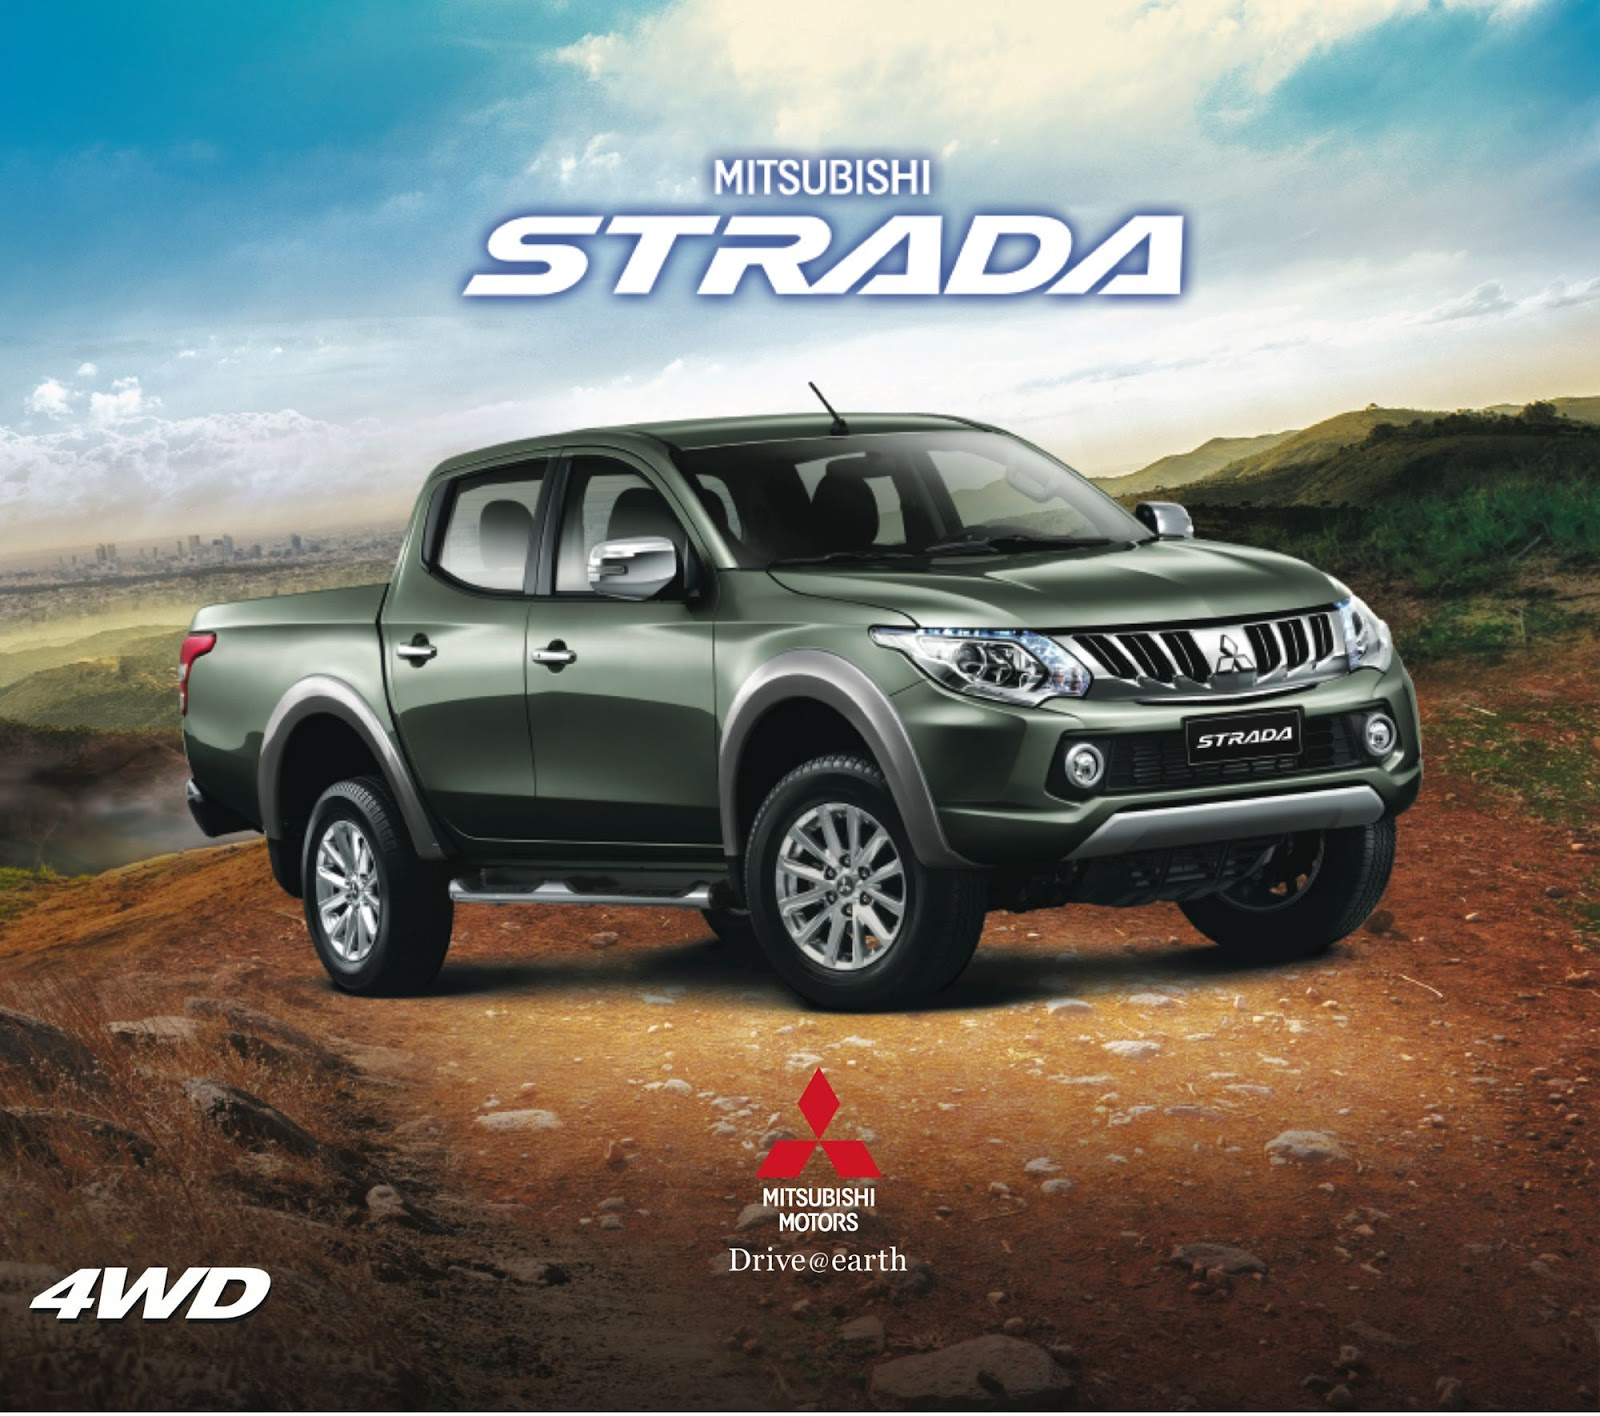 The All New 2015 Mitsubishi Strada Is Here W Full Brochure Chain Timing Tensioner Gear For Pajero Pickup Triton It Will Be Exported To Over 150 Countries Worldwide And Manufactured Solely At Motors Thailand